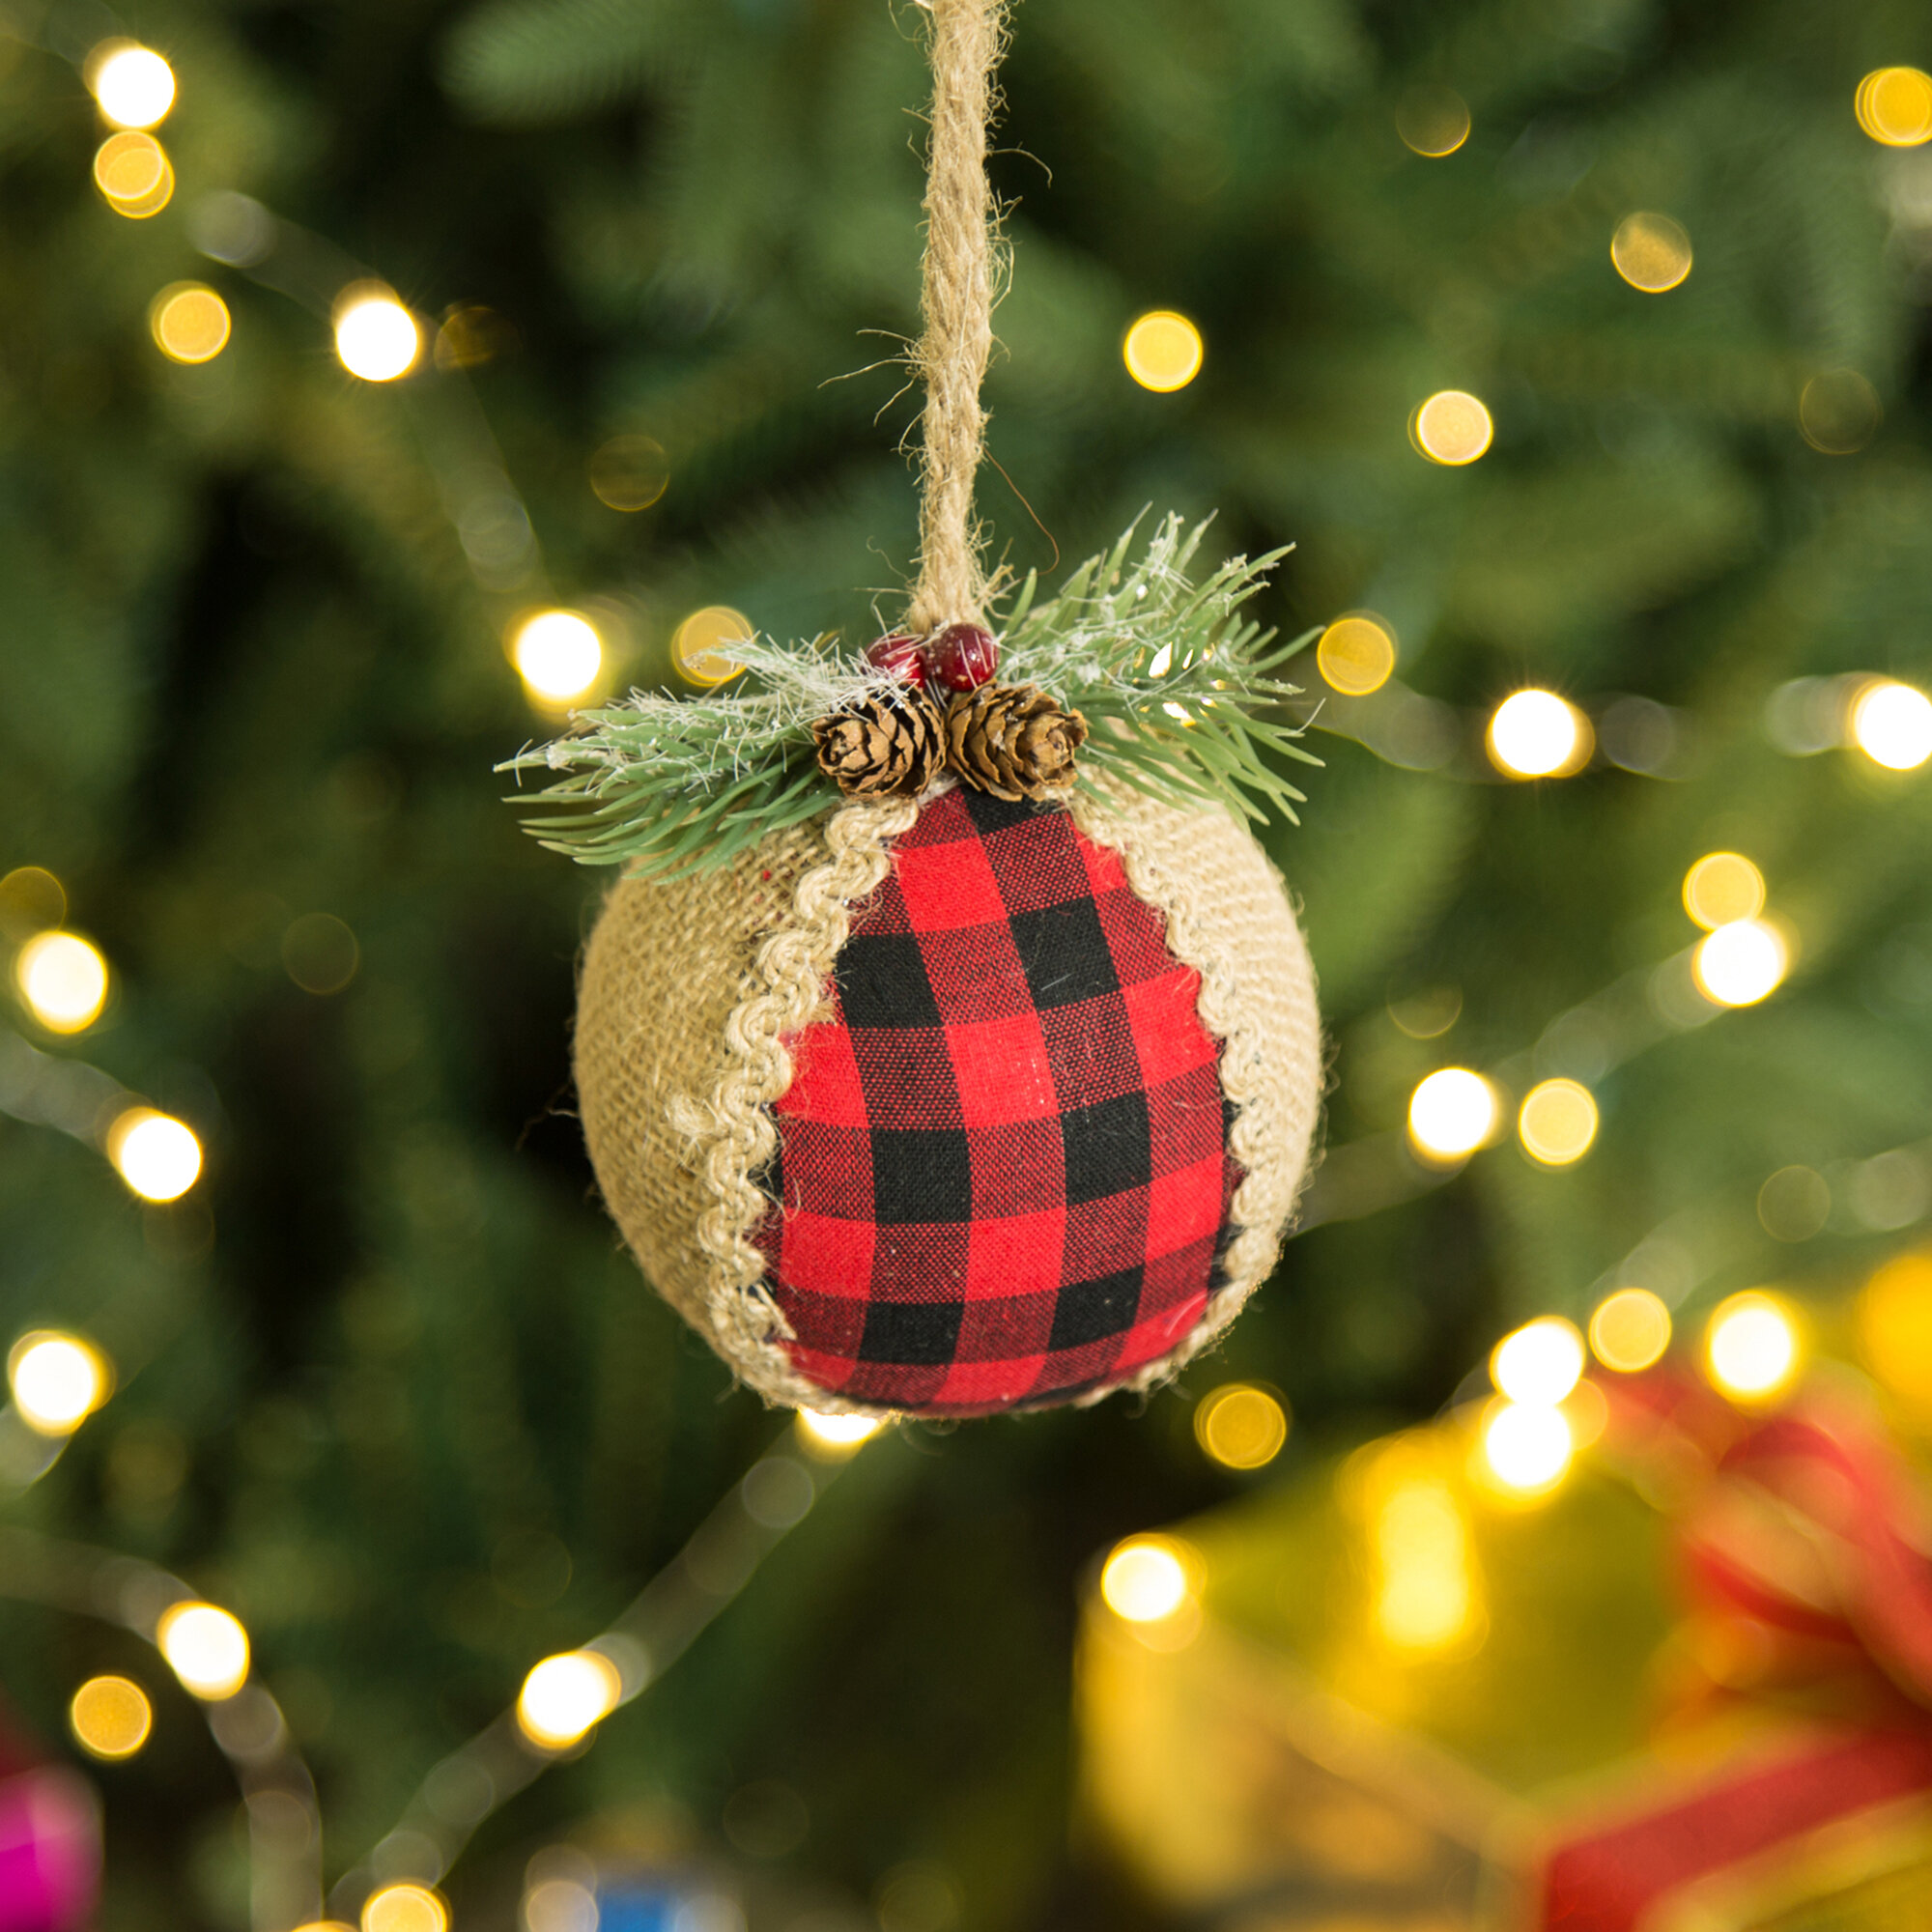 Glitzhome 6 Piece 1 Plaid Ball Ornament Set Reviews Wayfair